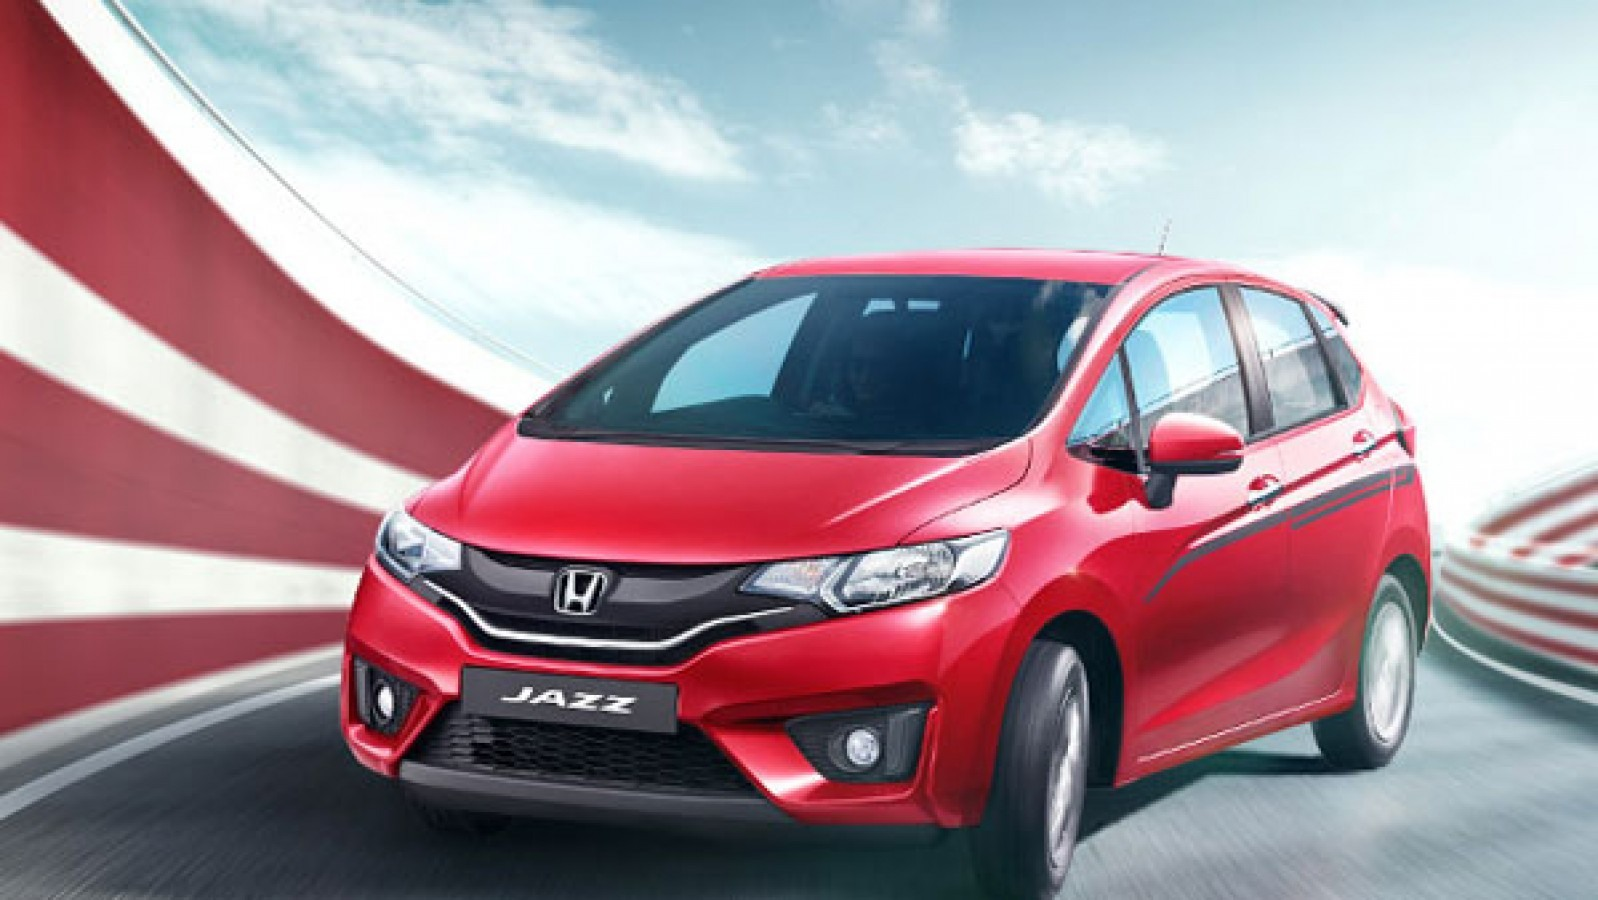 2020 Honda Jazz BS6 To Only Come With A 1.2L Petrol Engine